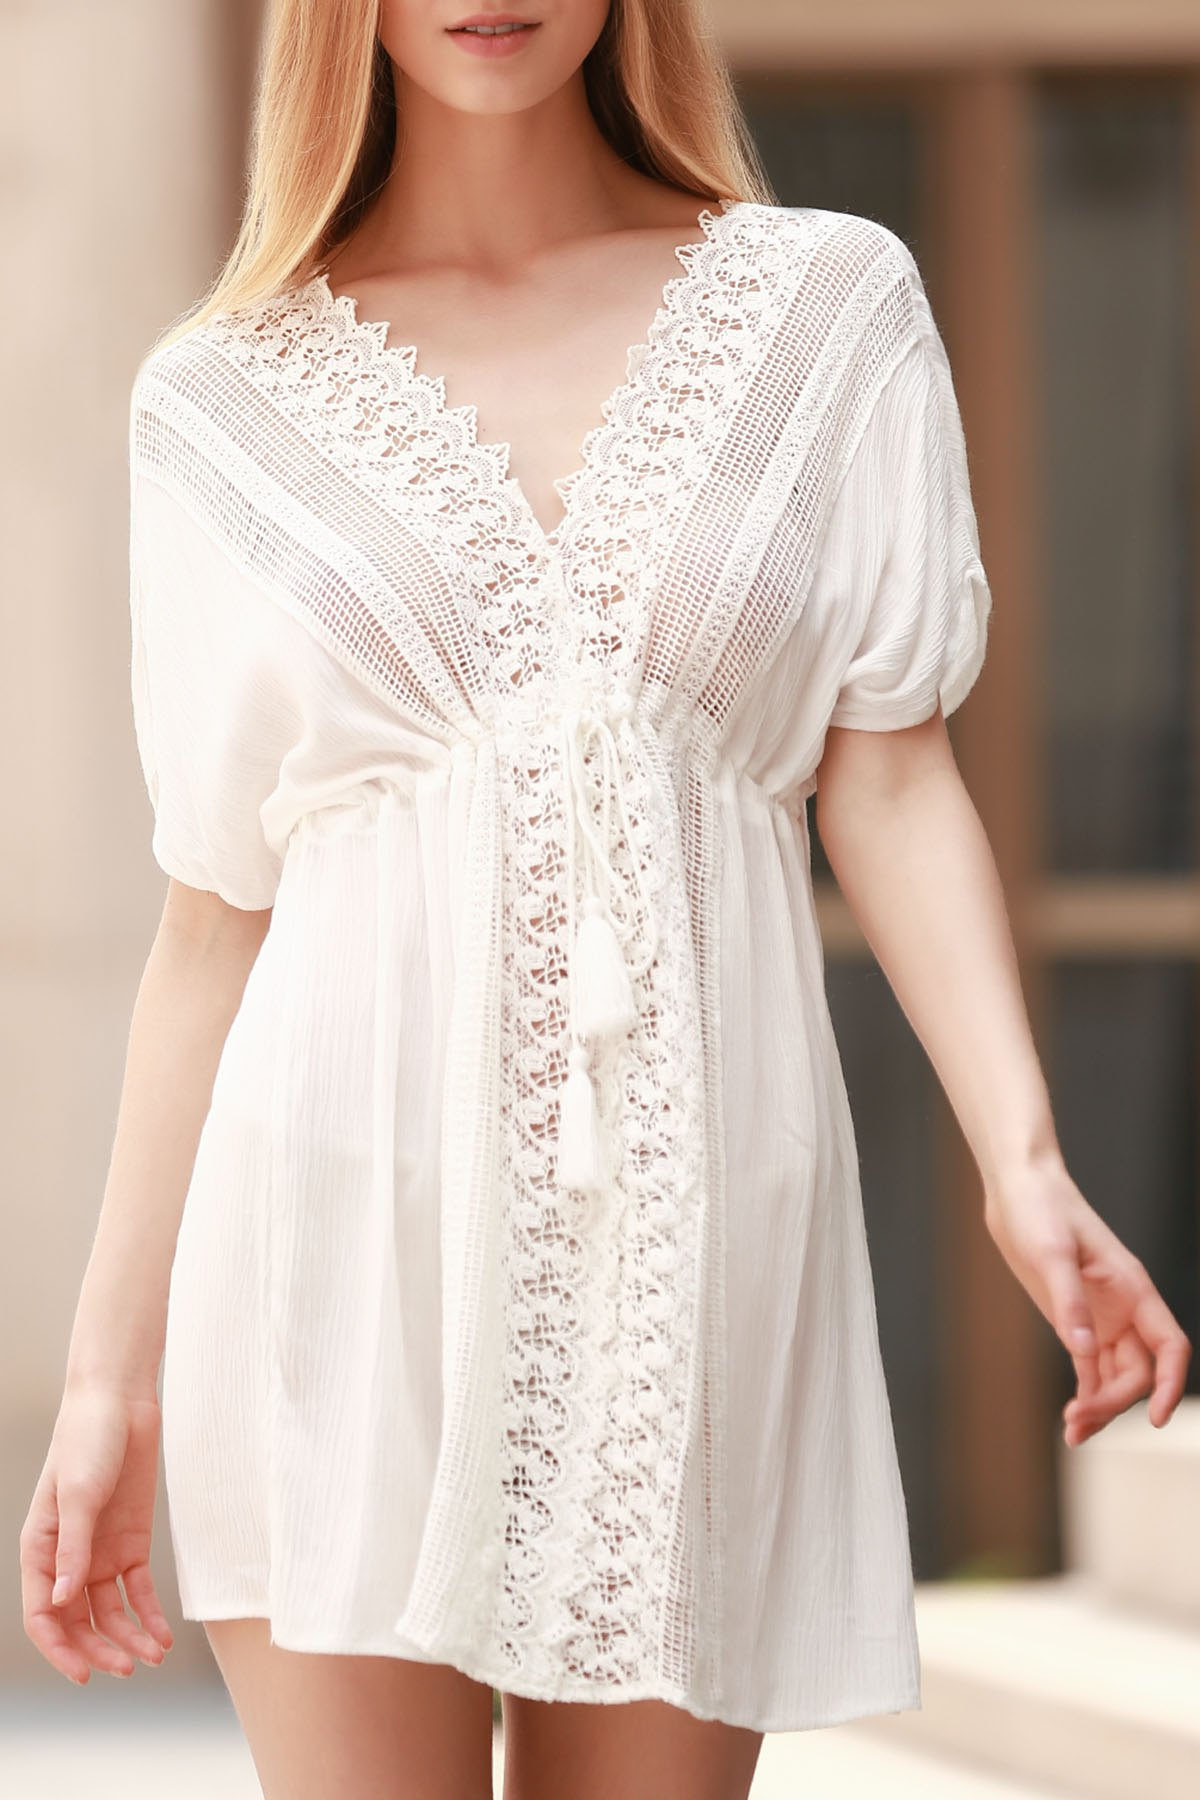 Plunging Neck Short Sleeve Hollow Out Lace-Up White Cover-Up